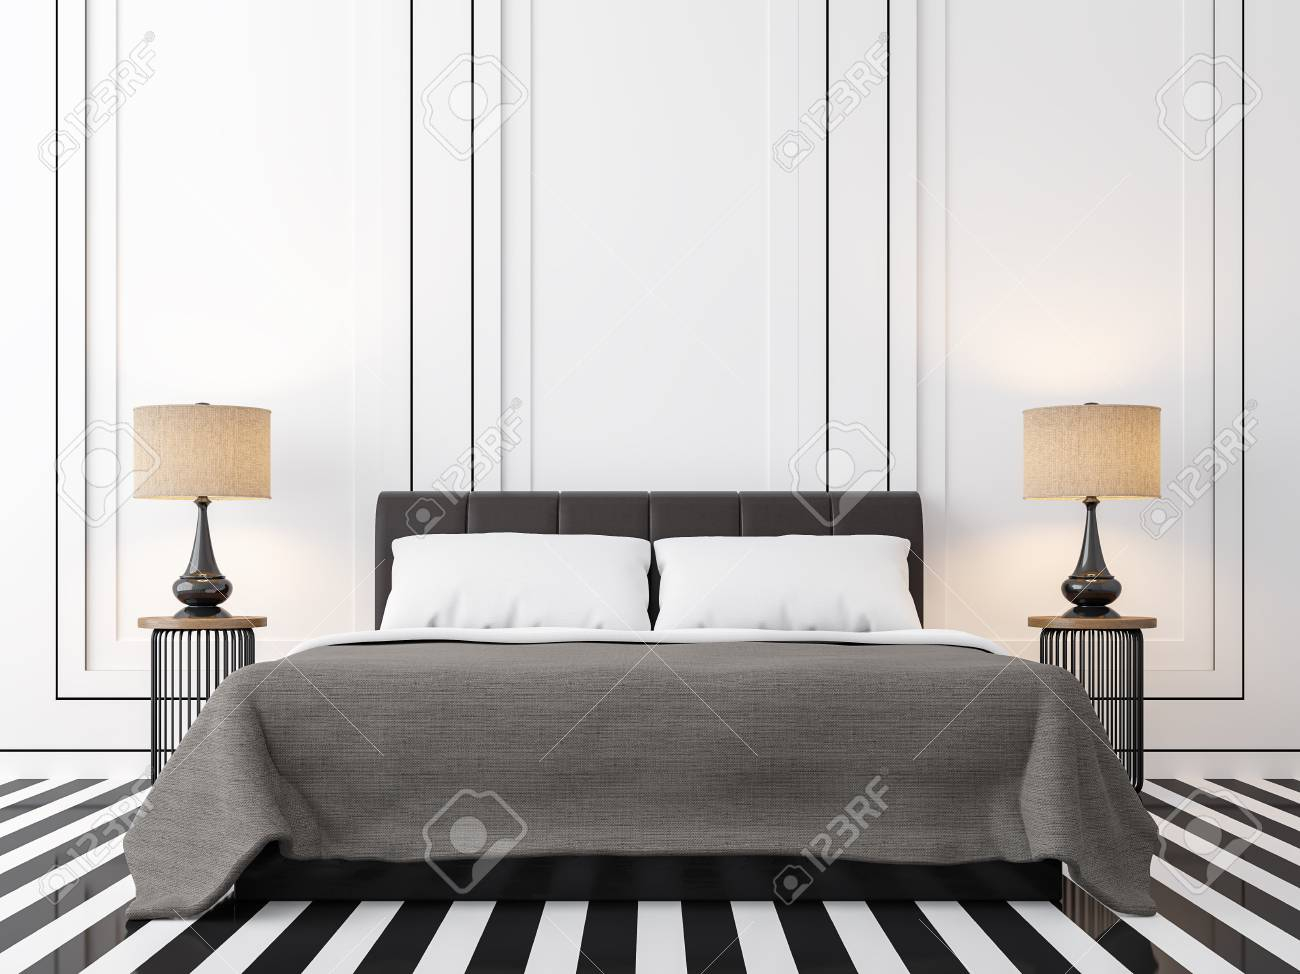 Modern Vintage Bedroom With Black And White 3d Rendering Image in Modern Retro Bedroom